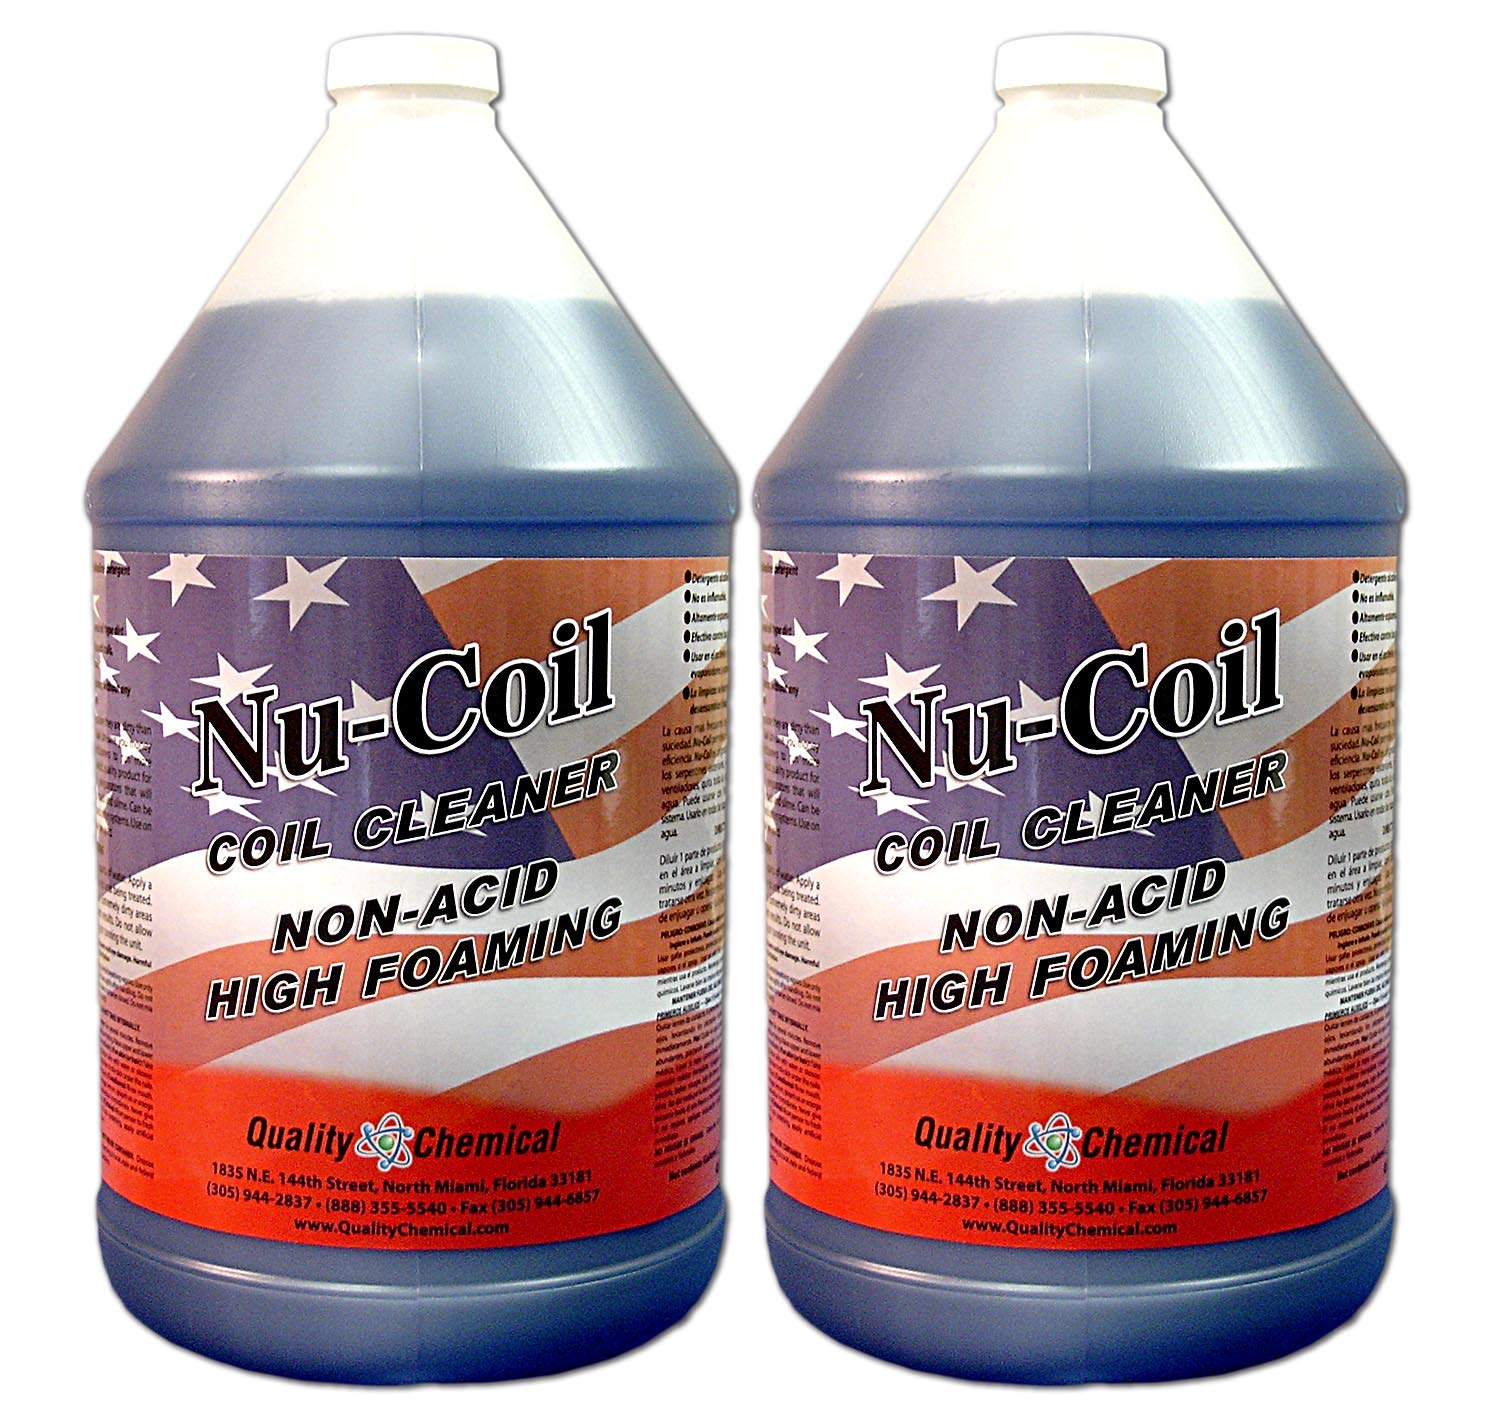 Nu-Coil Professional Grade Concentrated Air Conditioner Alkaline Condenser Coil Cleaner-2 gallon case by Quality Chemical